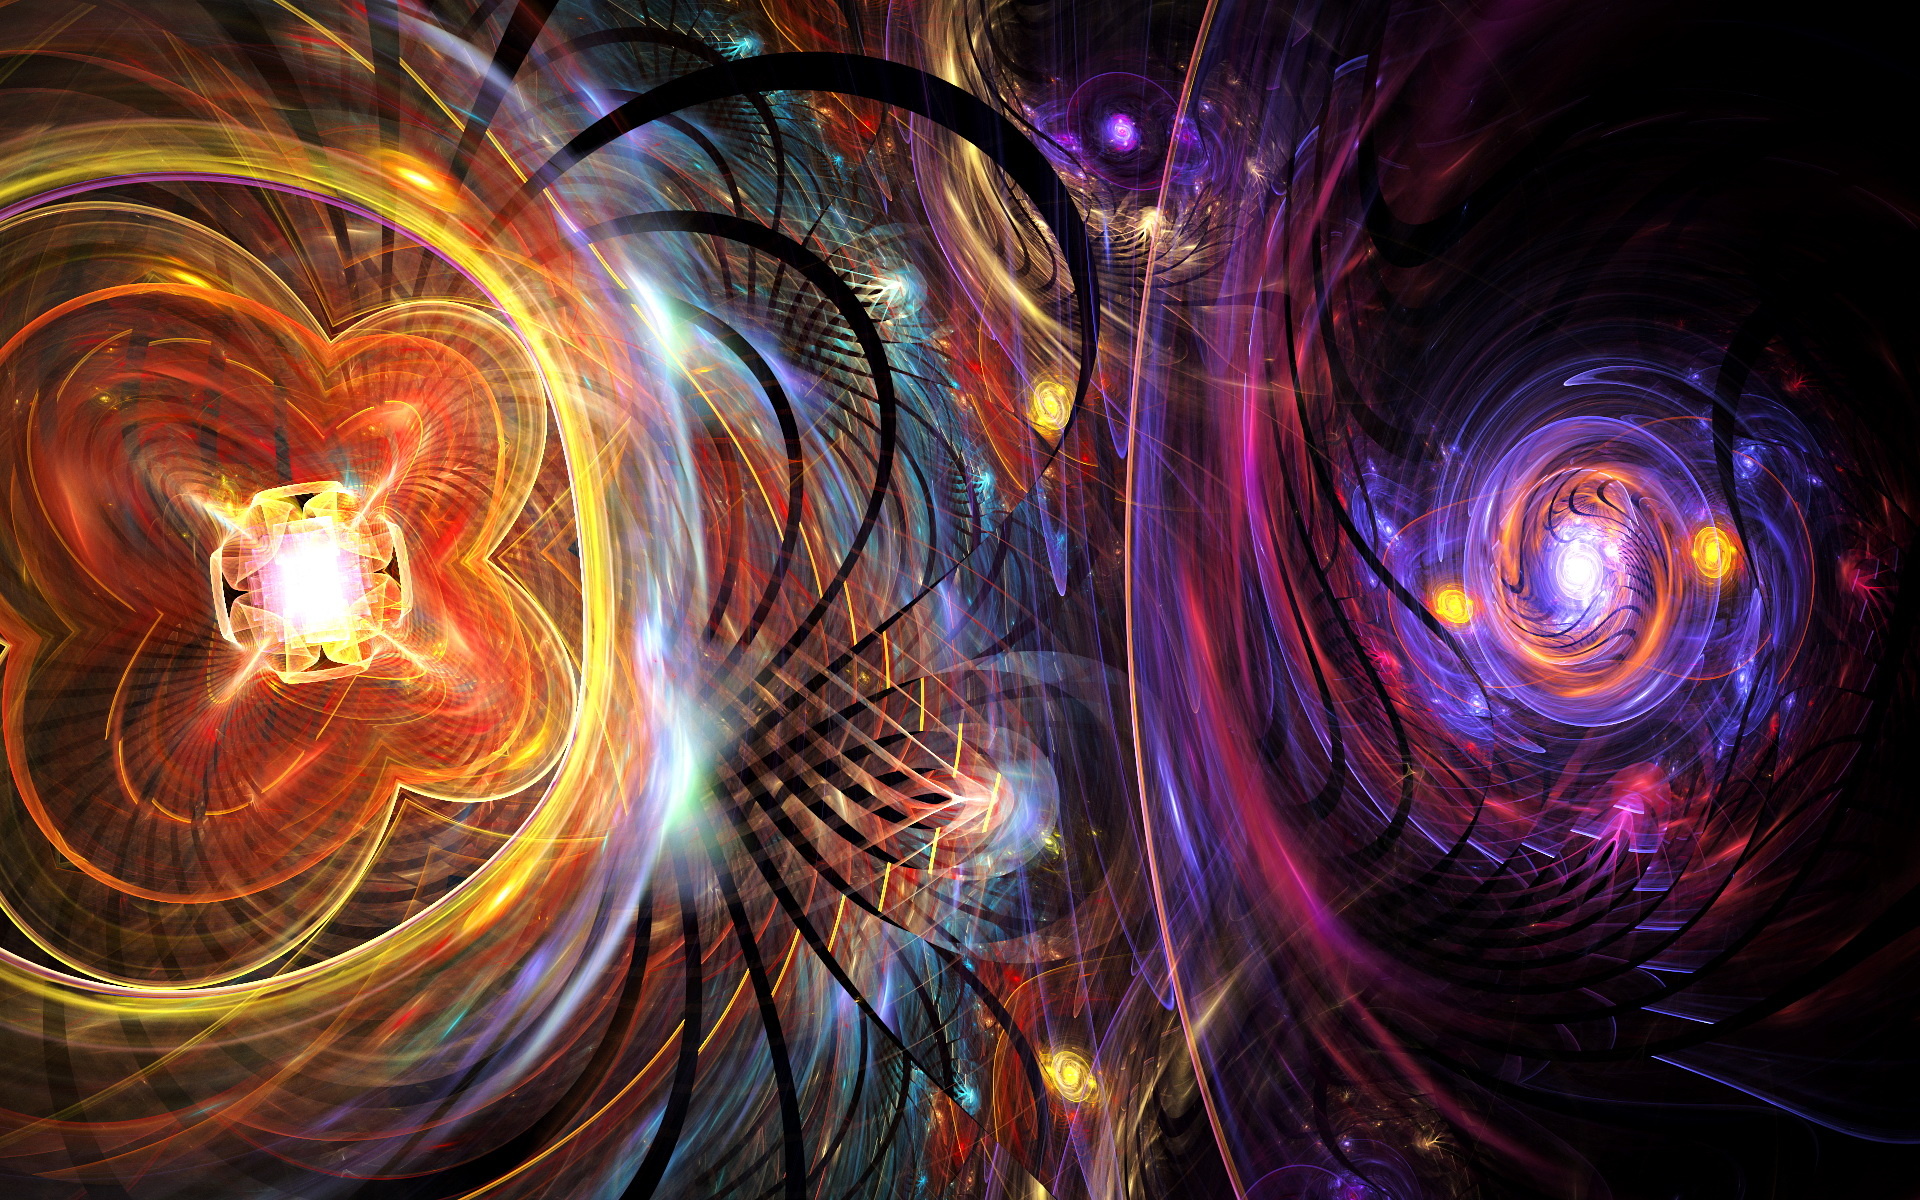 24610_1_miscellaneous_digital_art_trippy_psychedelic